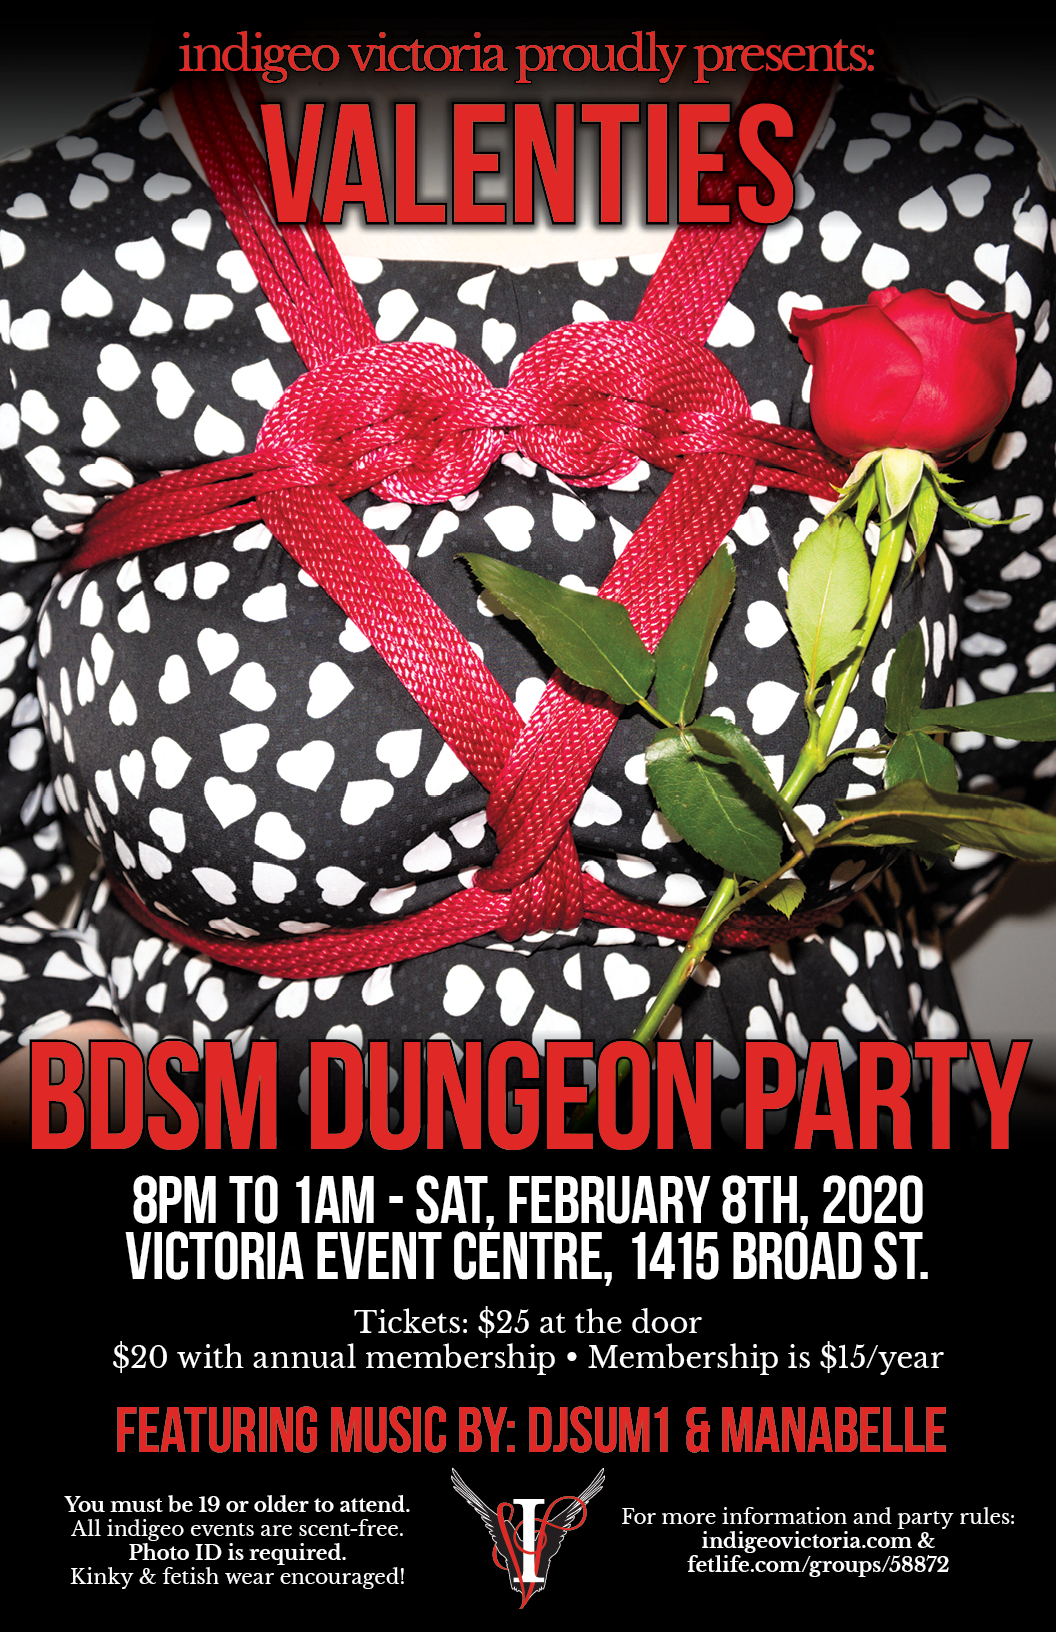 indigeo victoria proudly presents: Valenties BDSM Dungeon Party. 8PM to 1AM - Sat, February 8th, 2020. Victoria Event Centre, 1415 Broad Street. Tickets: $25 at the door, $20 with annual membership. Membership is $15 per year. Featuring music by DJsum1 and ManaBelle. You must be 19 or older to attend. Photo ID is required. All indigeo events are scent free. Kinky & fetish wear encouraged!